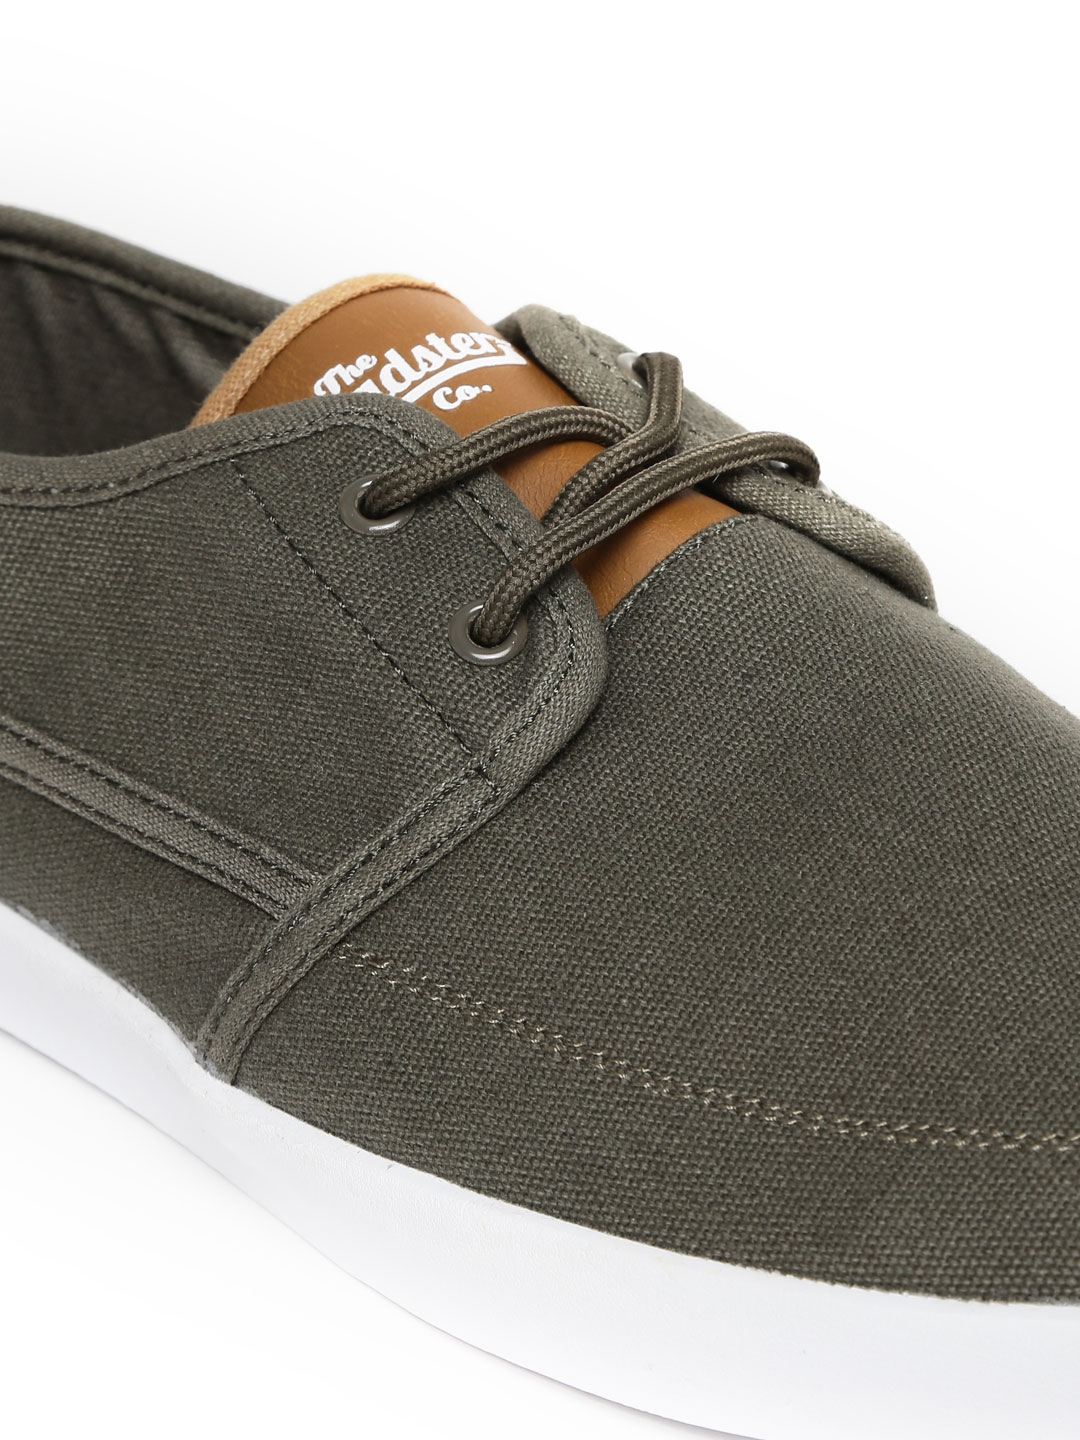 myntra roadster olive green canvas shoes 856917 buy